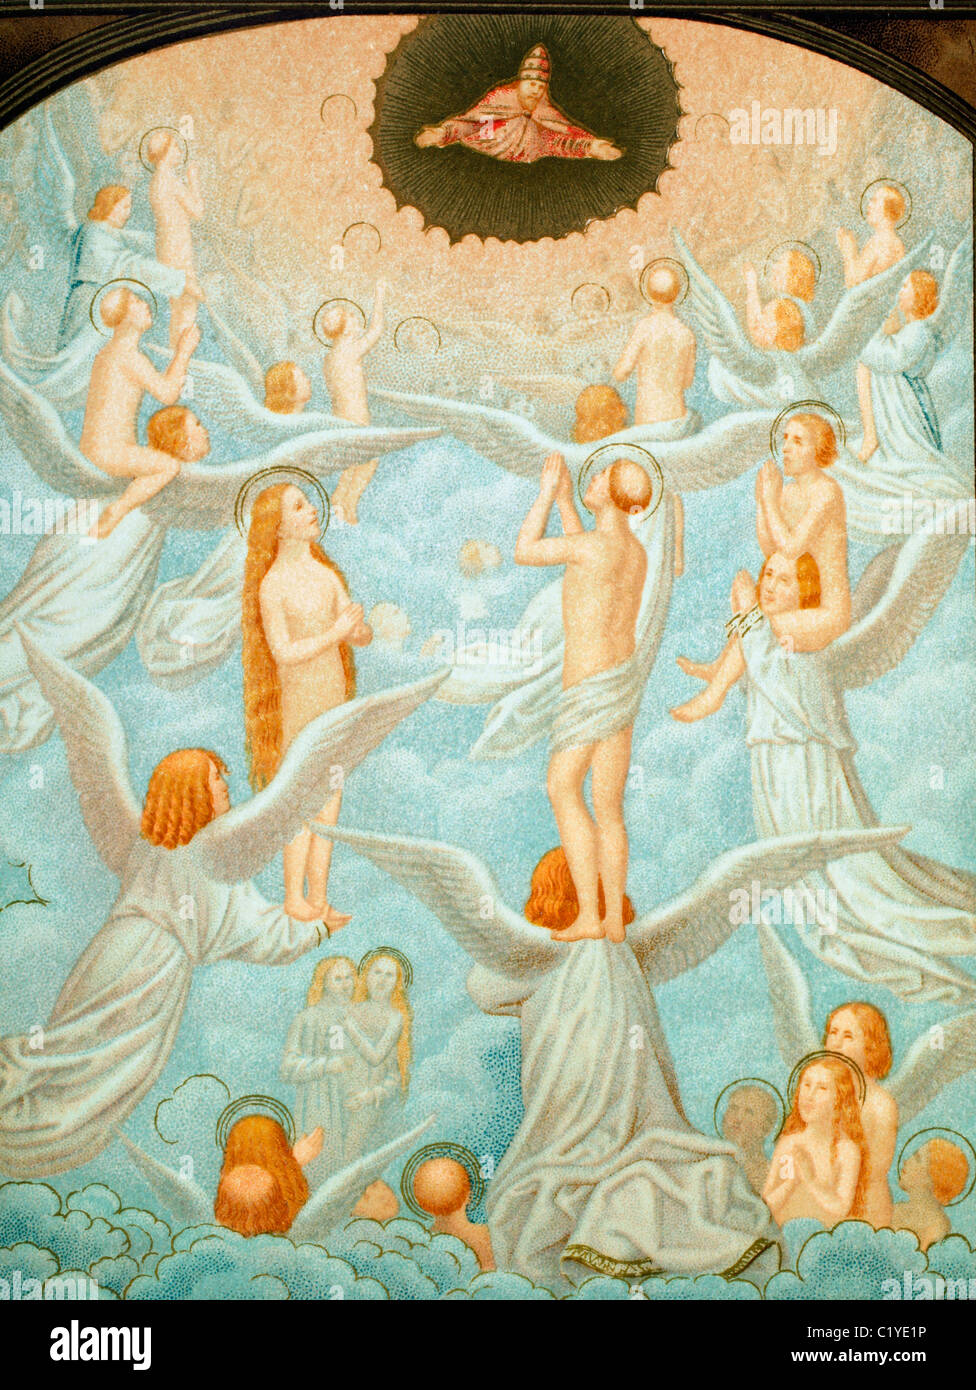 The Angels presenting to God the souls of the Elect. - Stock Image